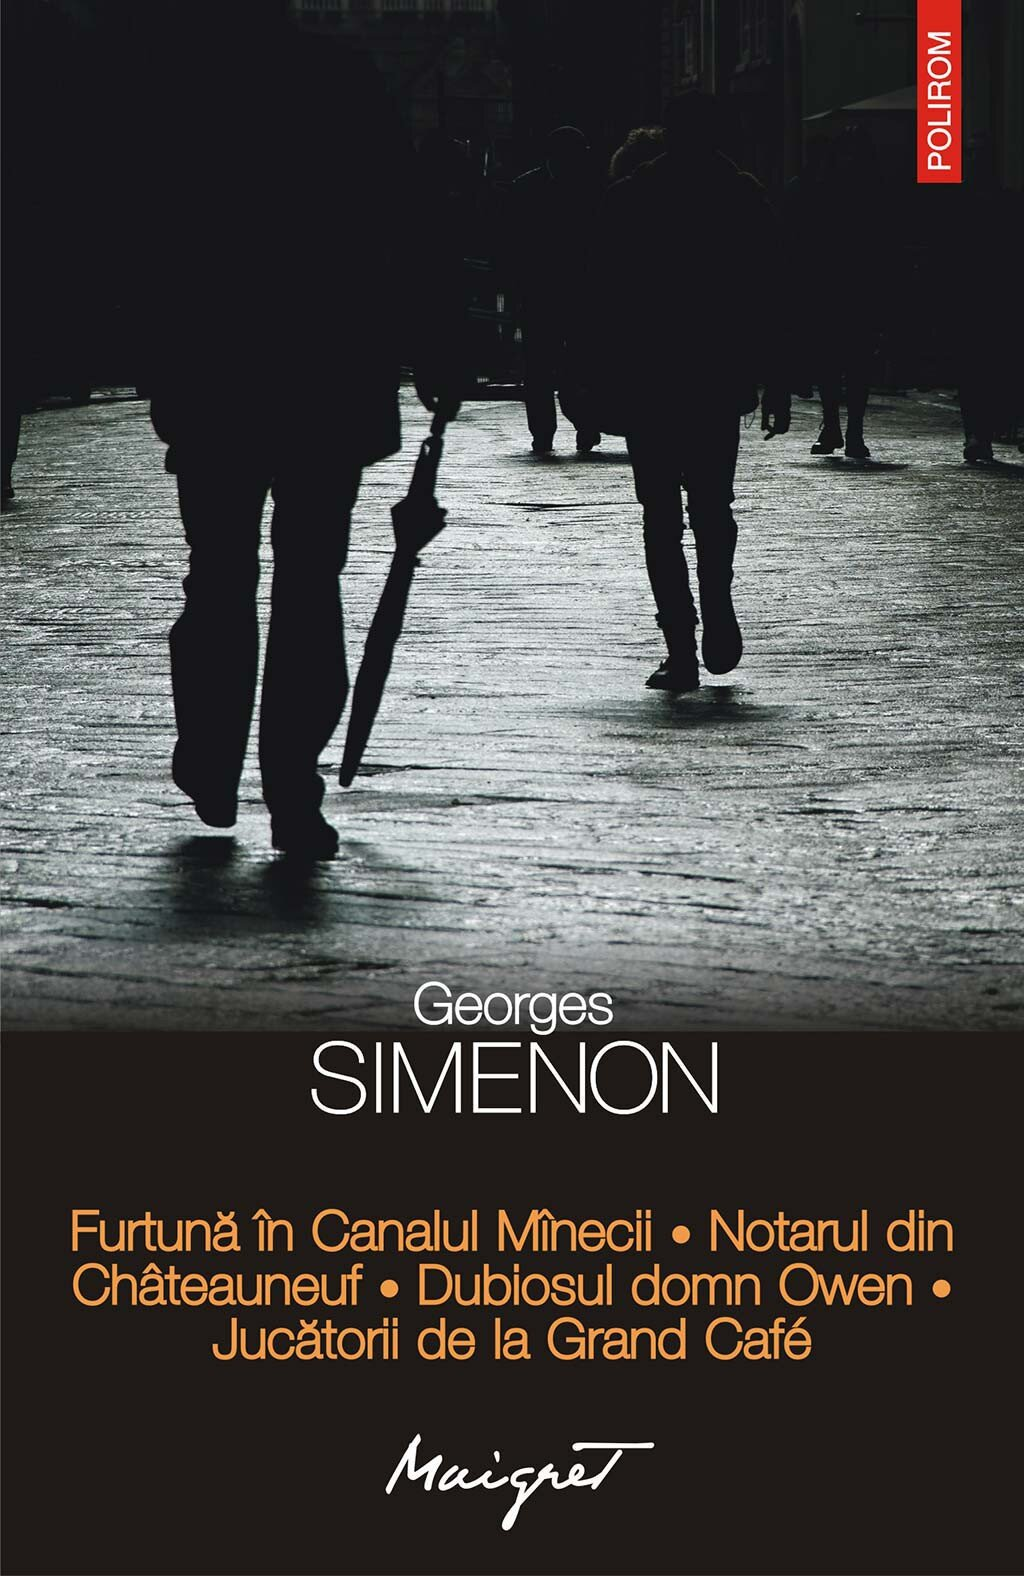 Furtuna in Canalul Minecii. Notarul din Chateauneuf. Dubiosul domn Owen. Jucatorii de la Grand Cafe PDF (Download eBook)